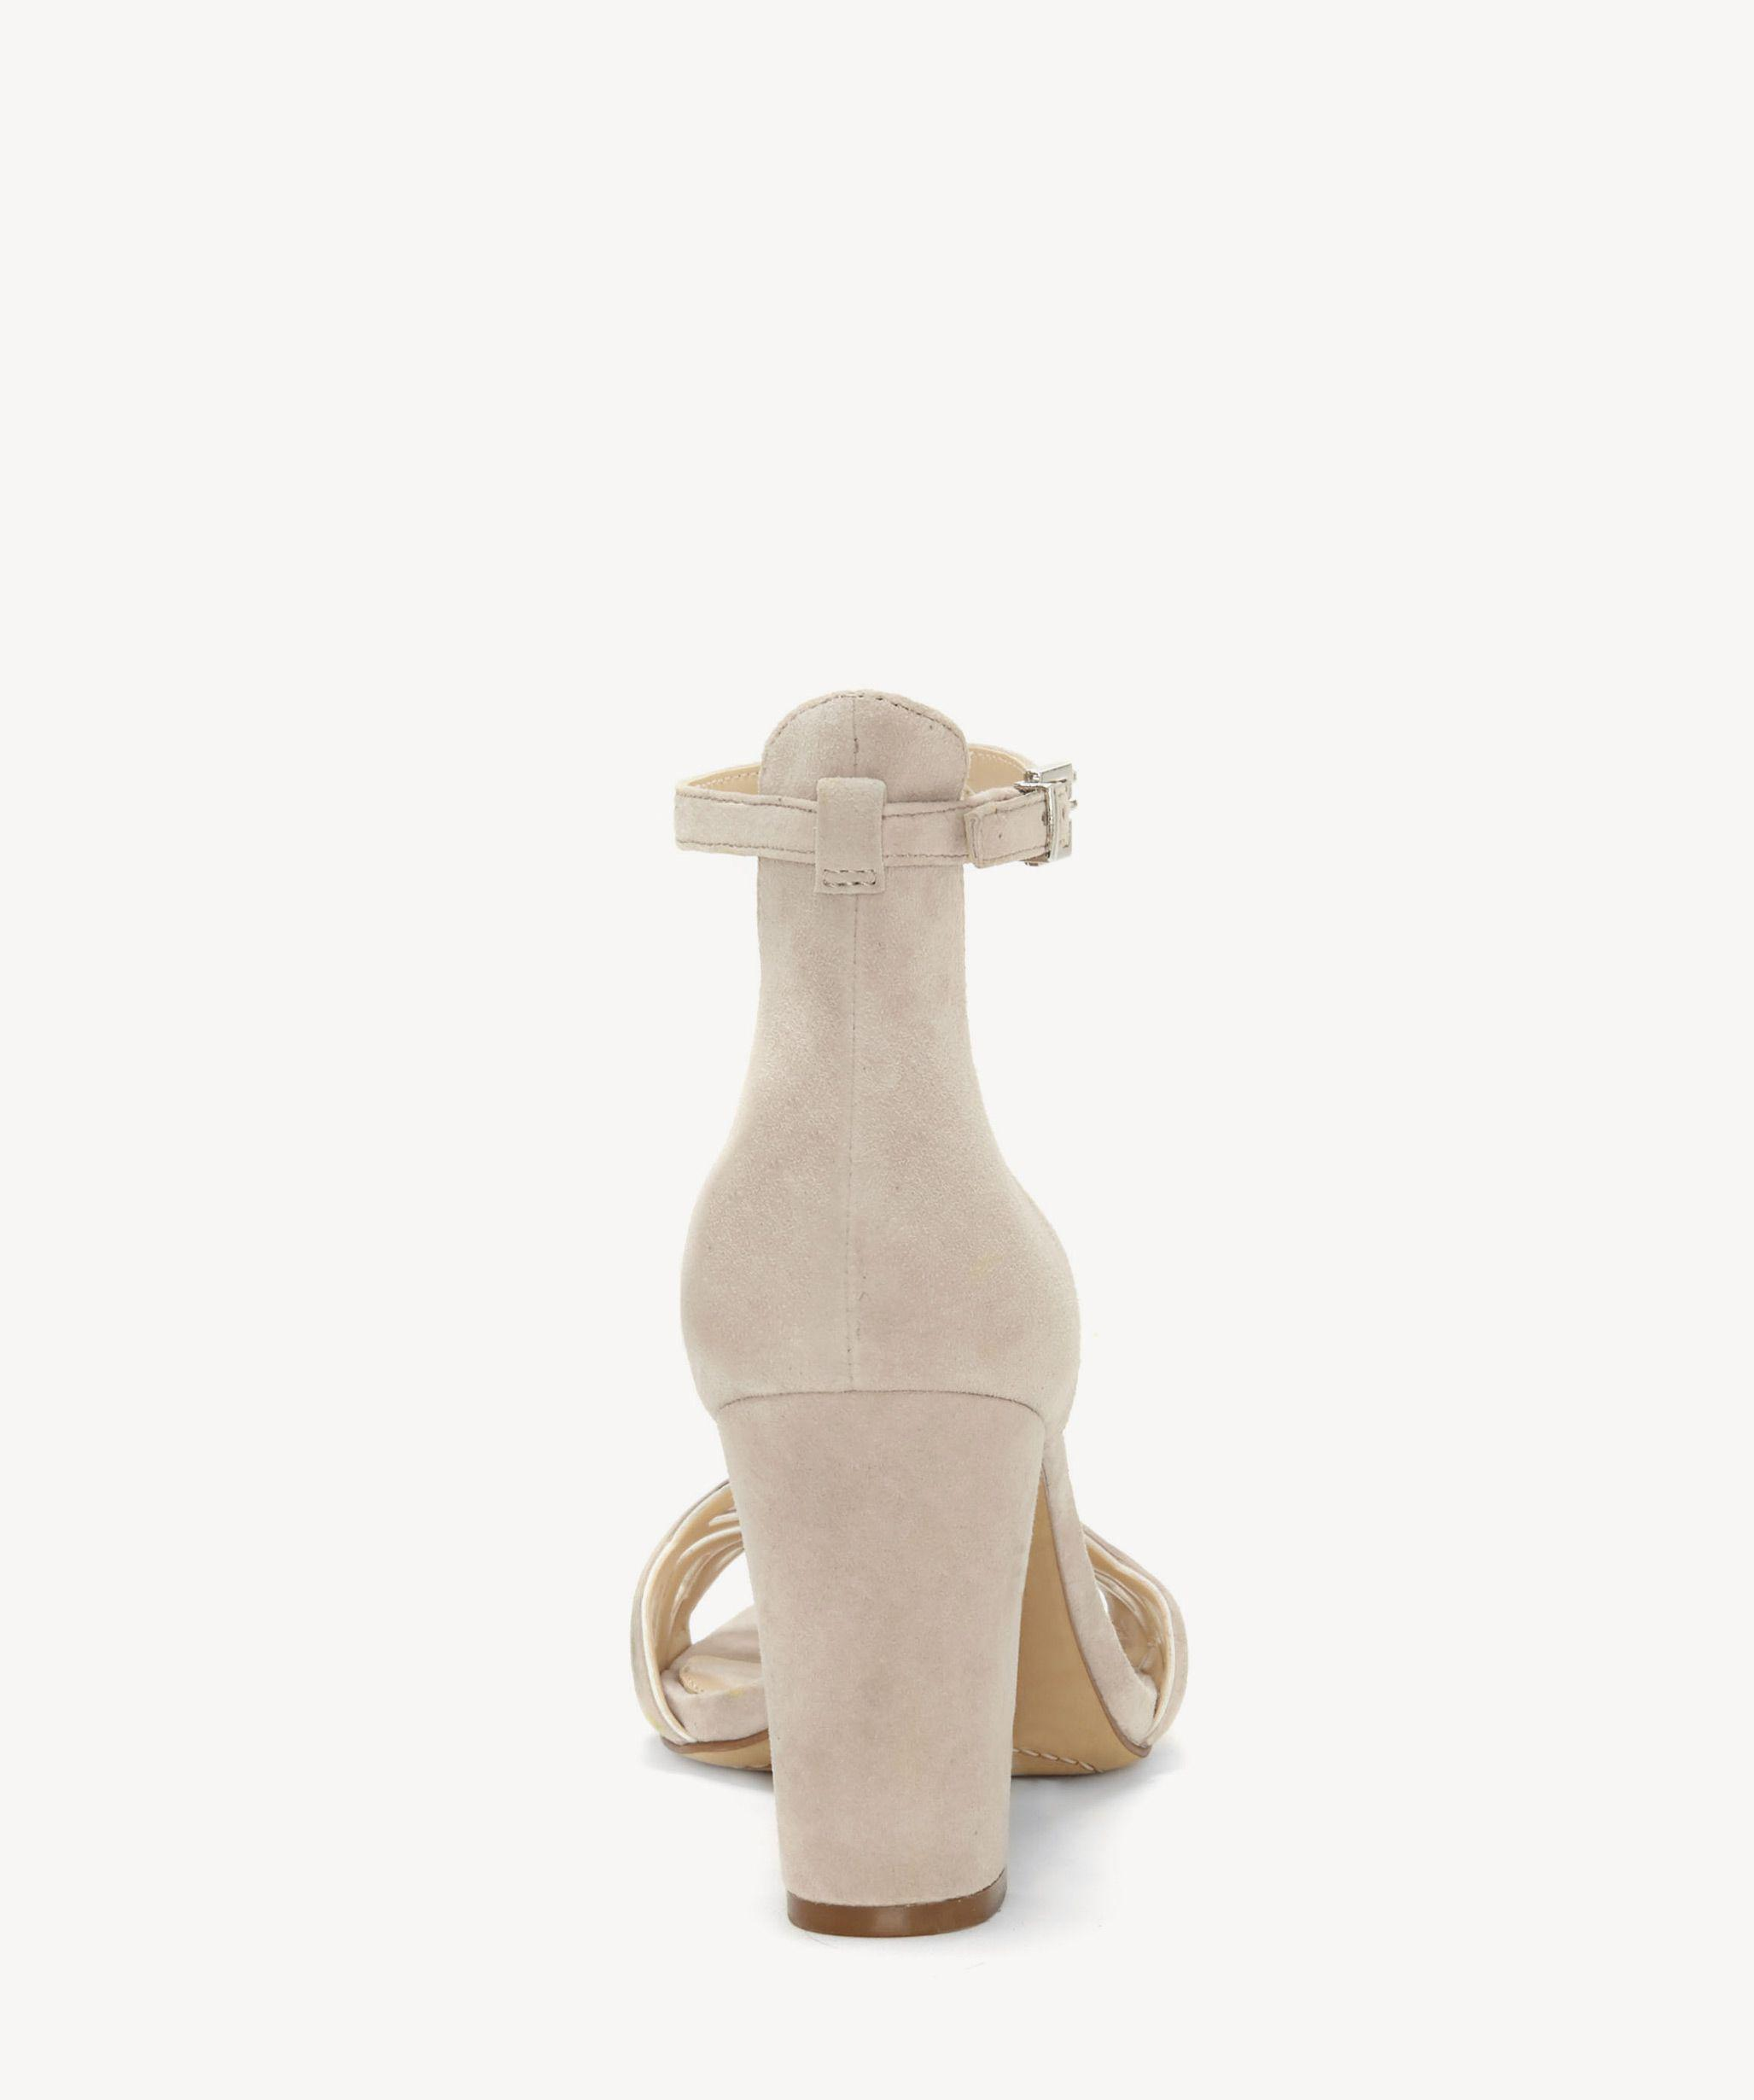 dd987583490 Lyst - Vince Camuto Caveena Ankle Strap Sandal in Natural